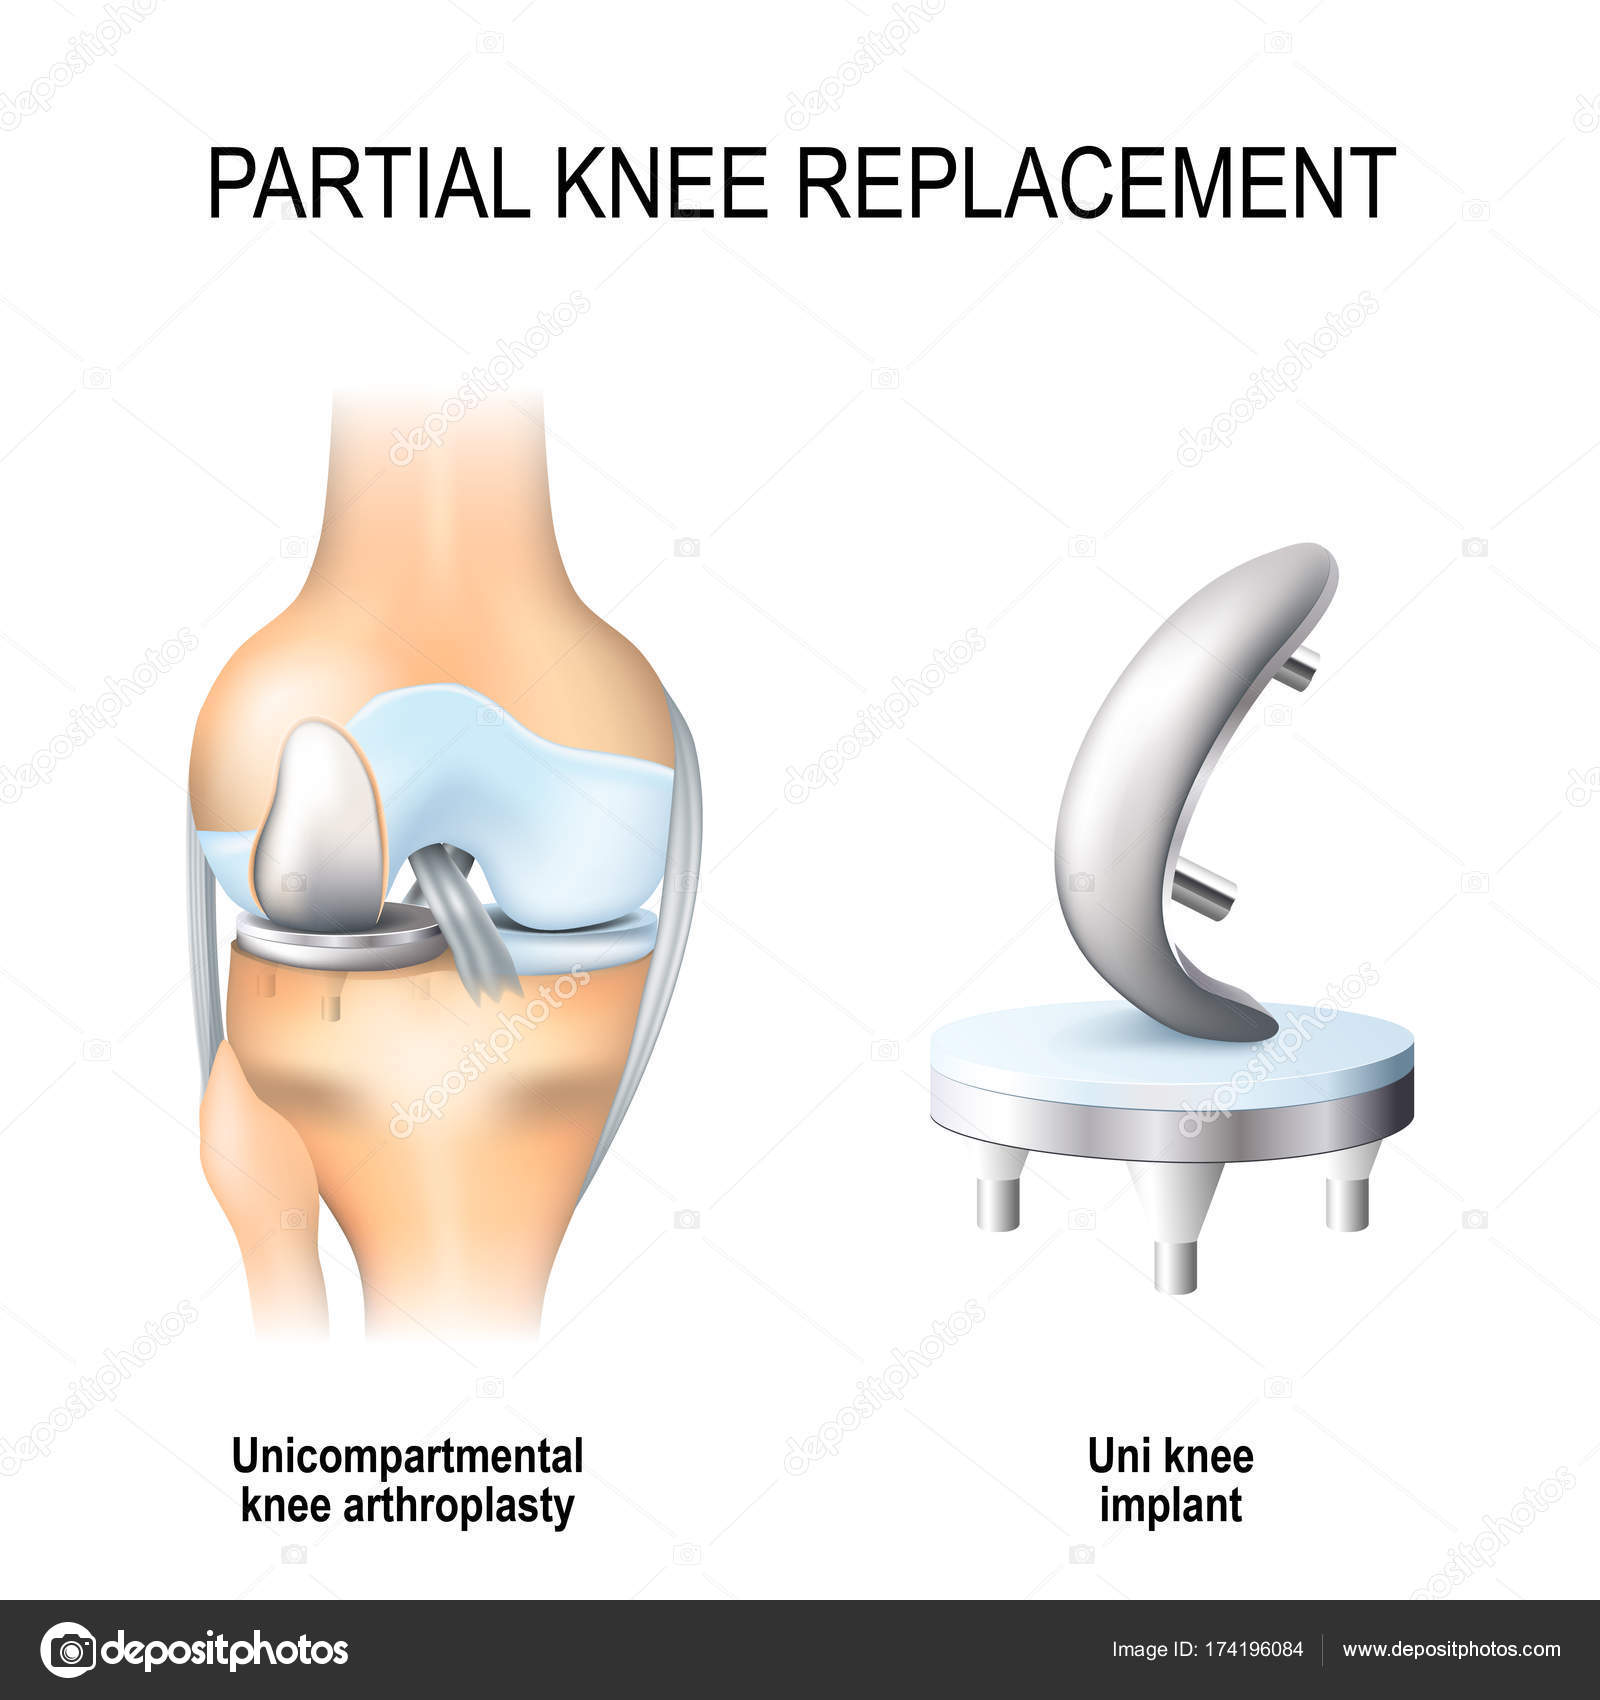 Partial knee replacement stock vector edesignua 174196084 partial knee replacement unicompartmental knee arthroplasty and uni knee implant vector by edesignua publicscrutiny Image collections